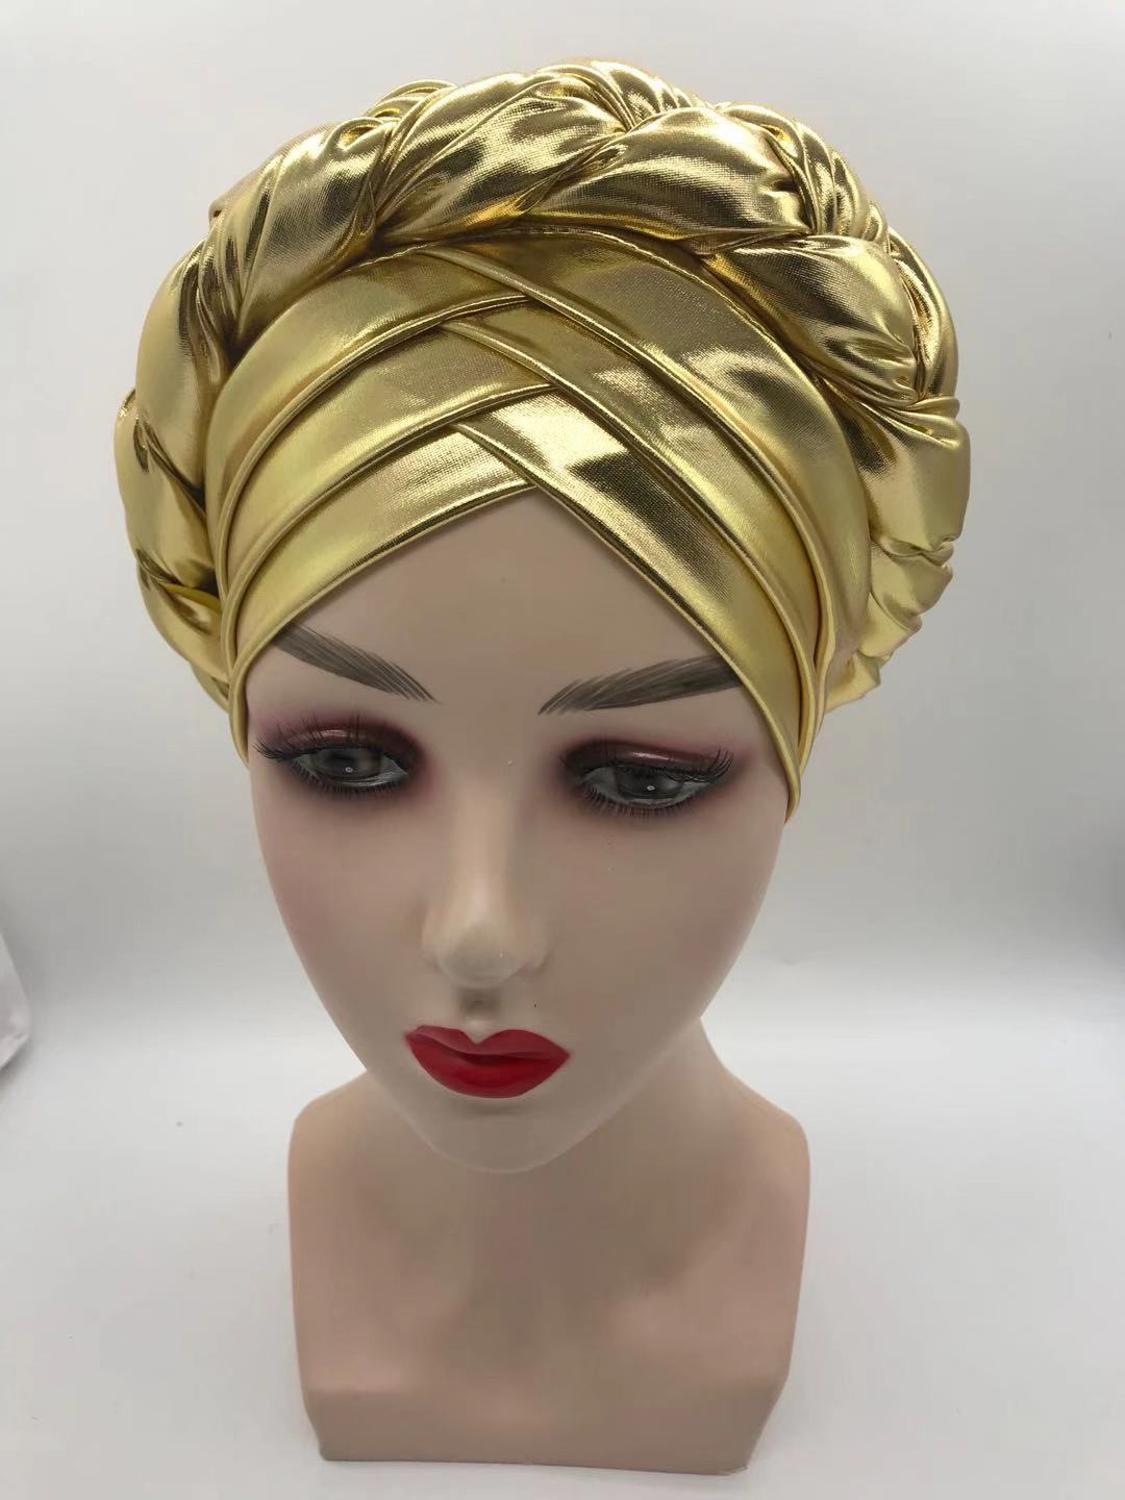 latest aso oke auto gele headtie 2020 Already Handmade african Cap Nigerian Wedding Gele women braid turbans Ladies head wraps